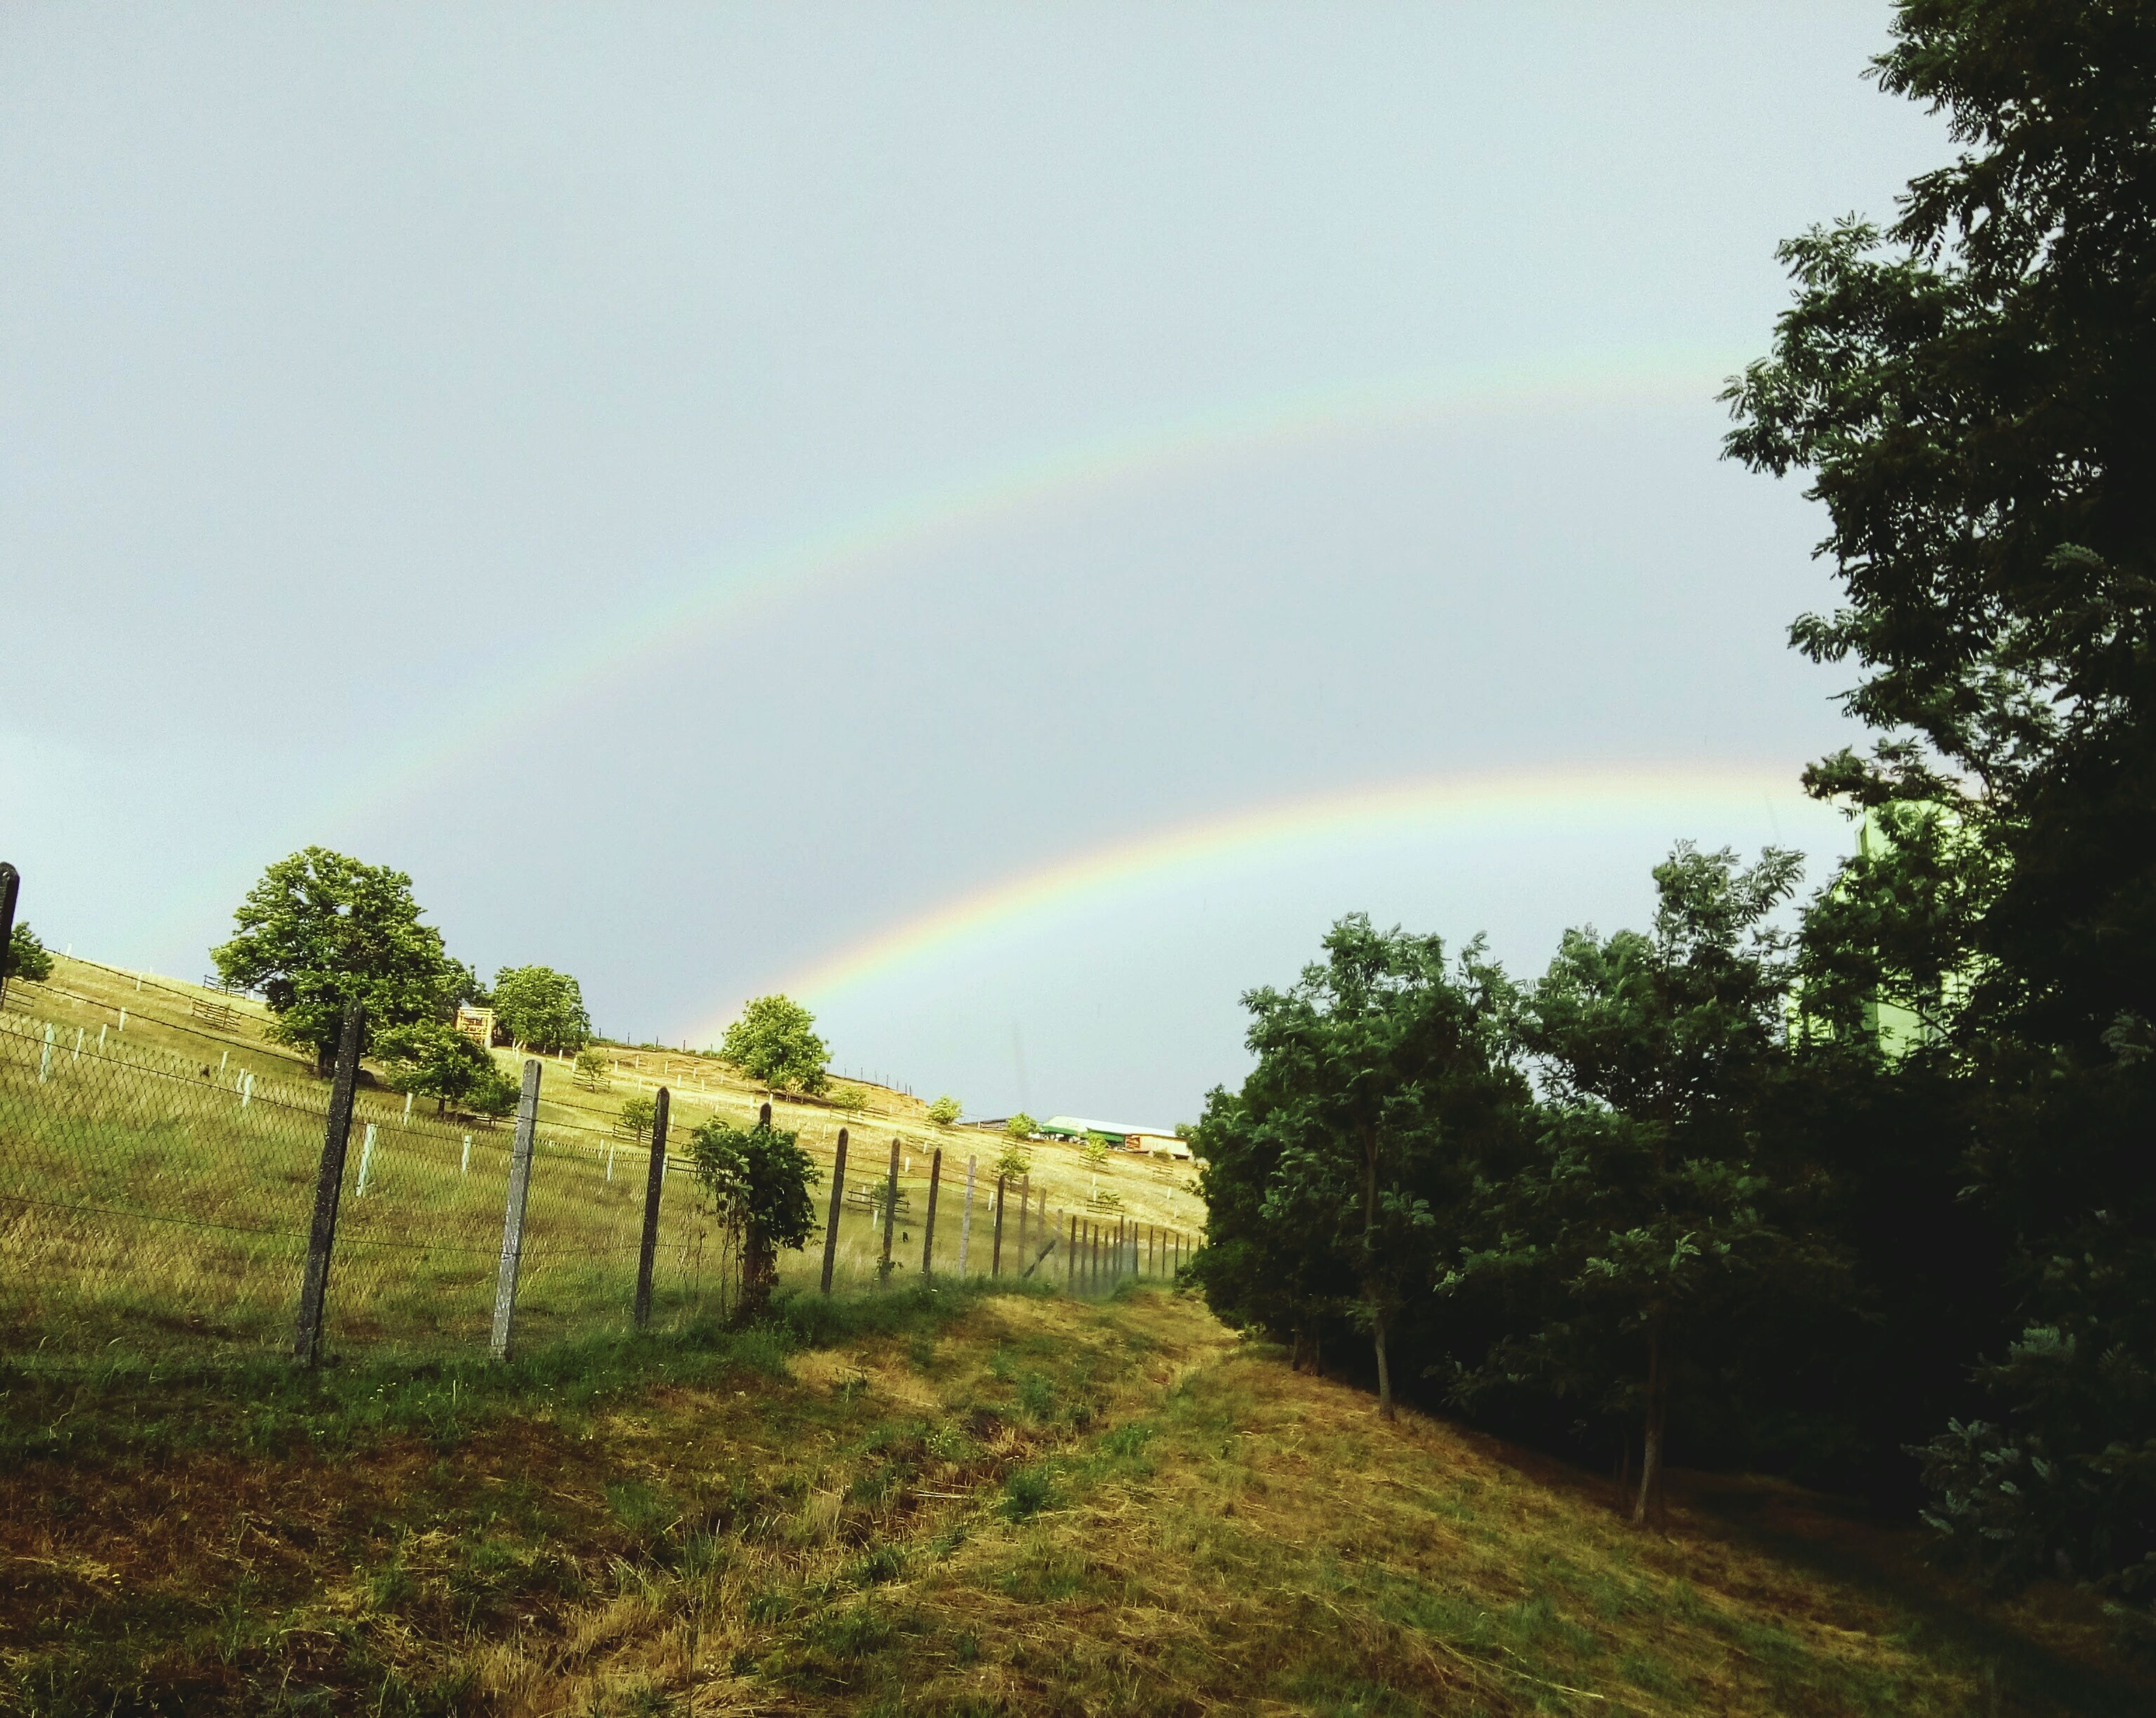 rainbow, tree, nature, no people, day, scenics, tranquility, beauty in nature, double rainbow, landscape, field, sky, tranquil scene, outdoors, grass, growth